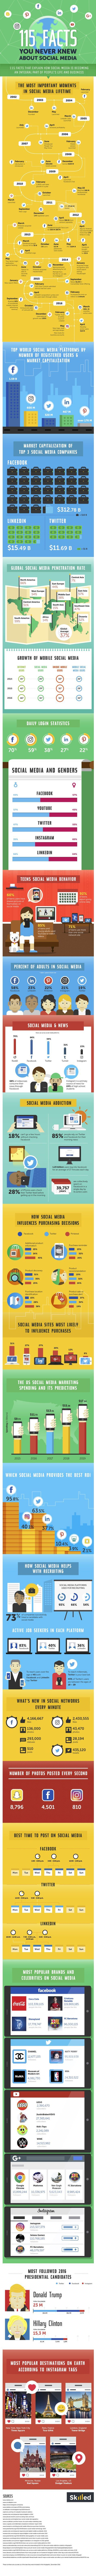 115 Must Know Facts about Social Media [Infographic]